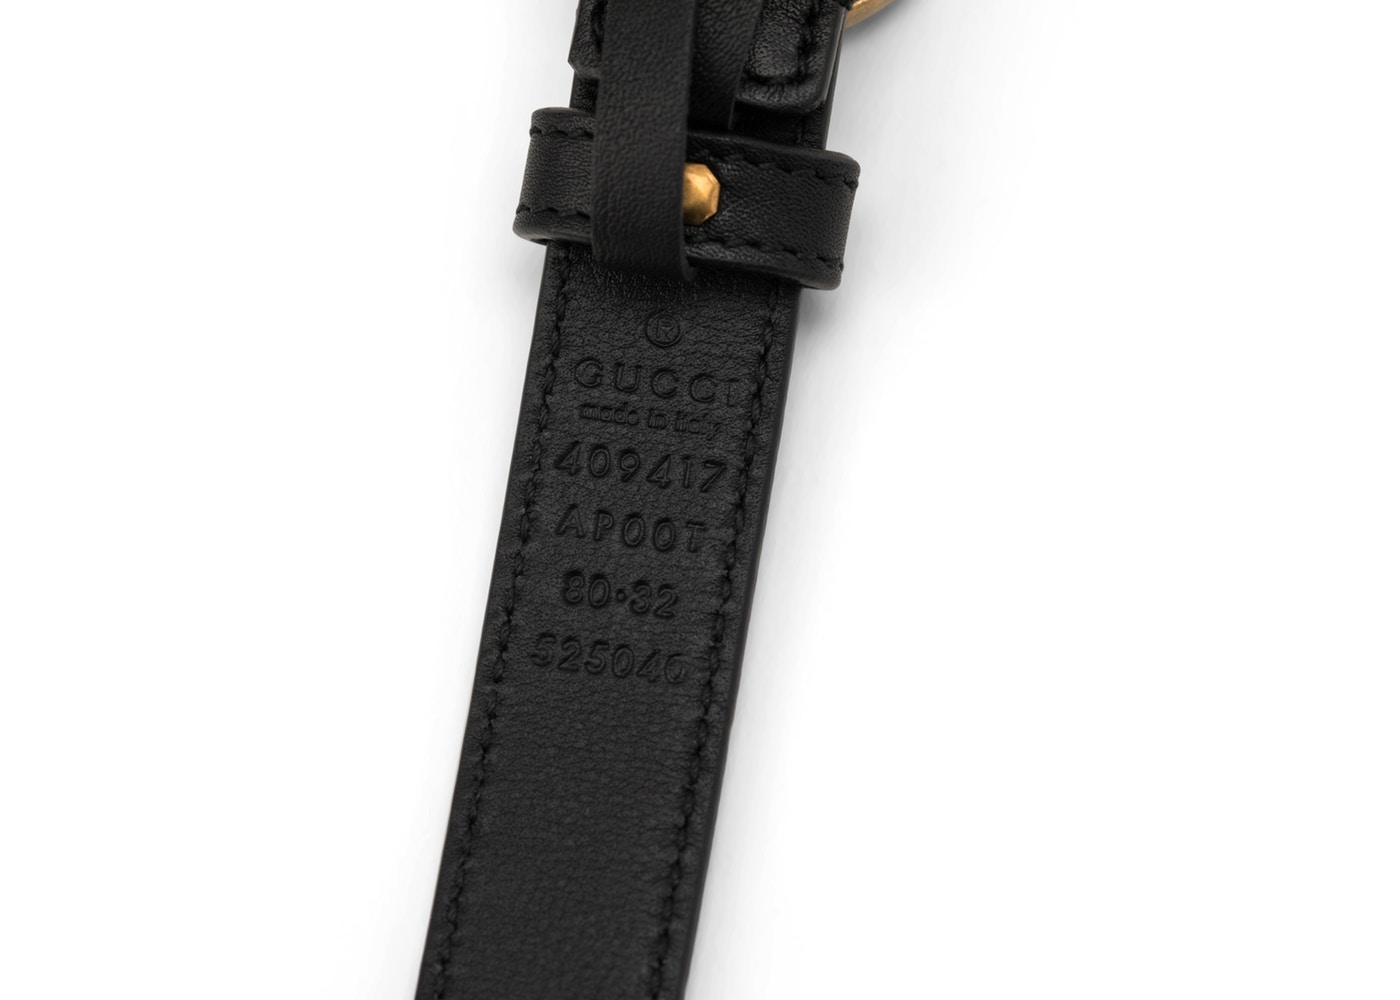 198be3a70 Gucci Double G Buckle Leather Belt 1.5 Width 80-32 Black